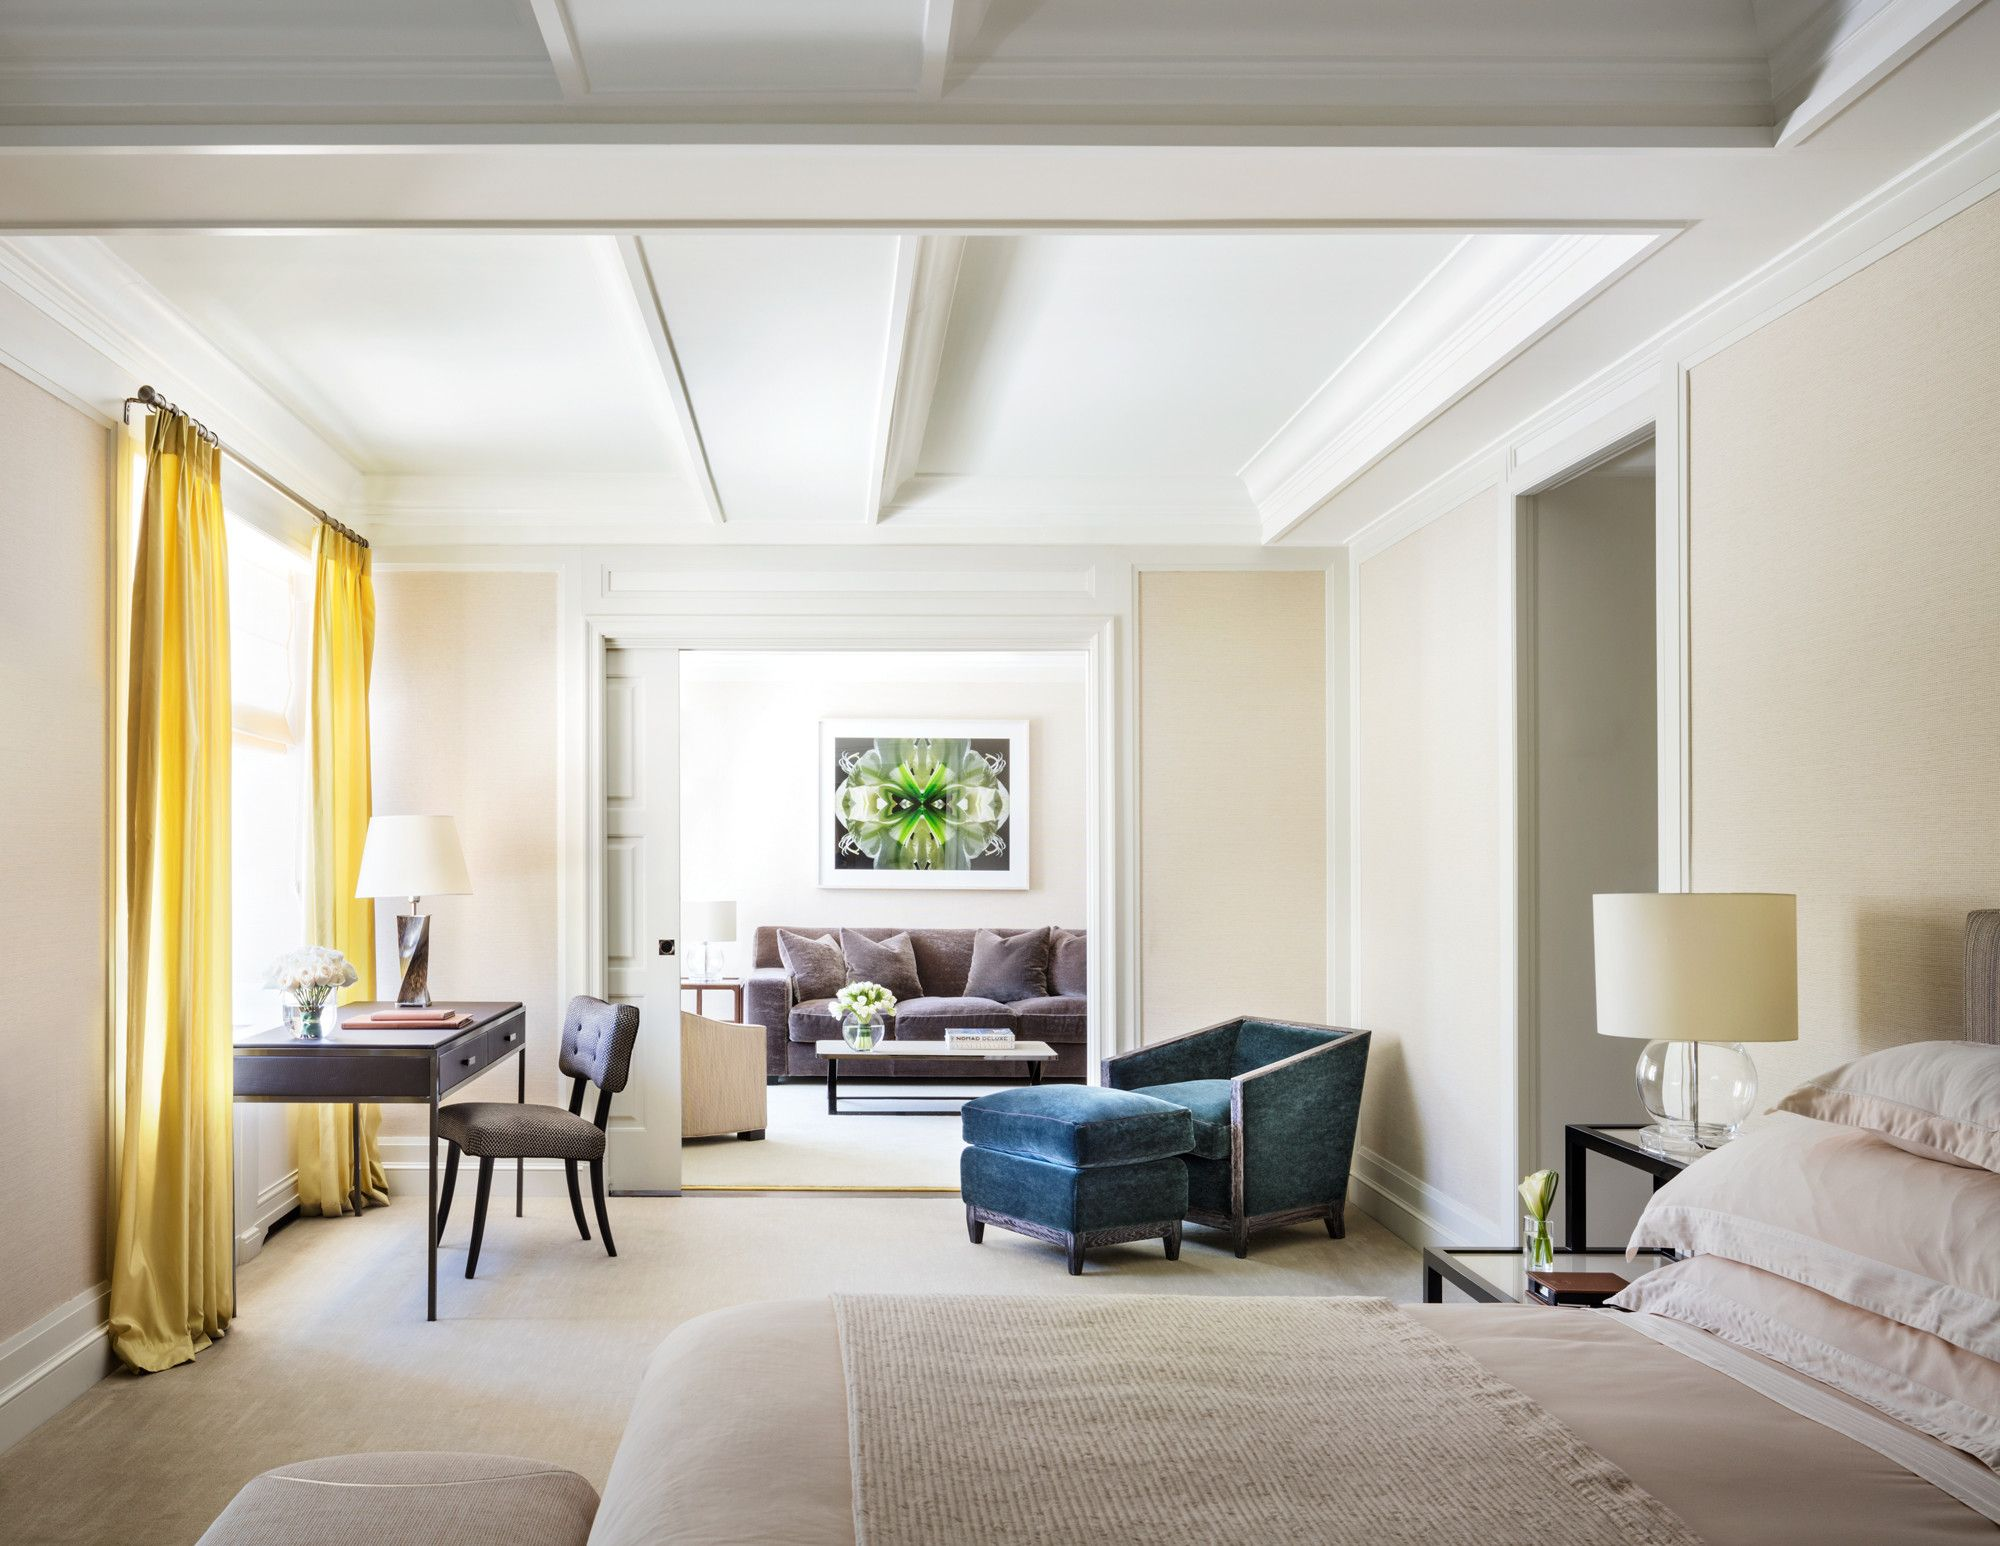 5 Star Luxury Hotel Rooms Suites The Mark Hotel In Nyc